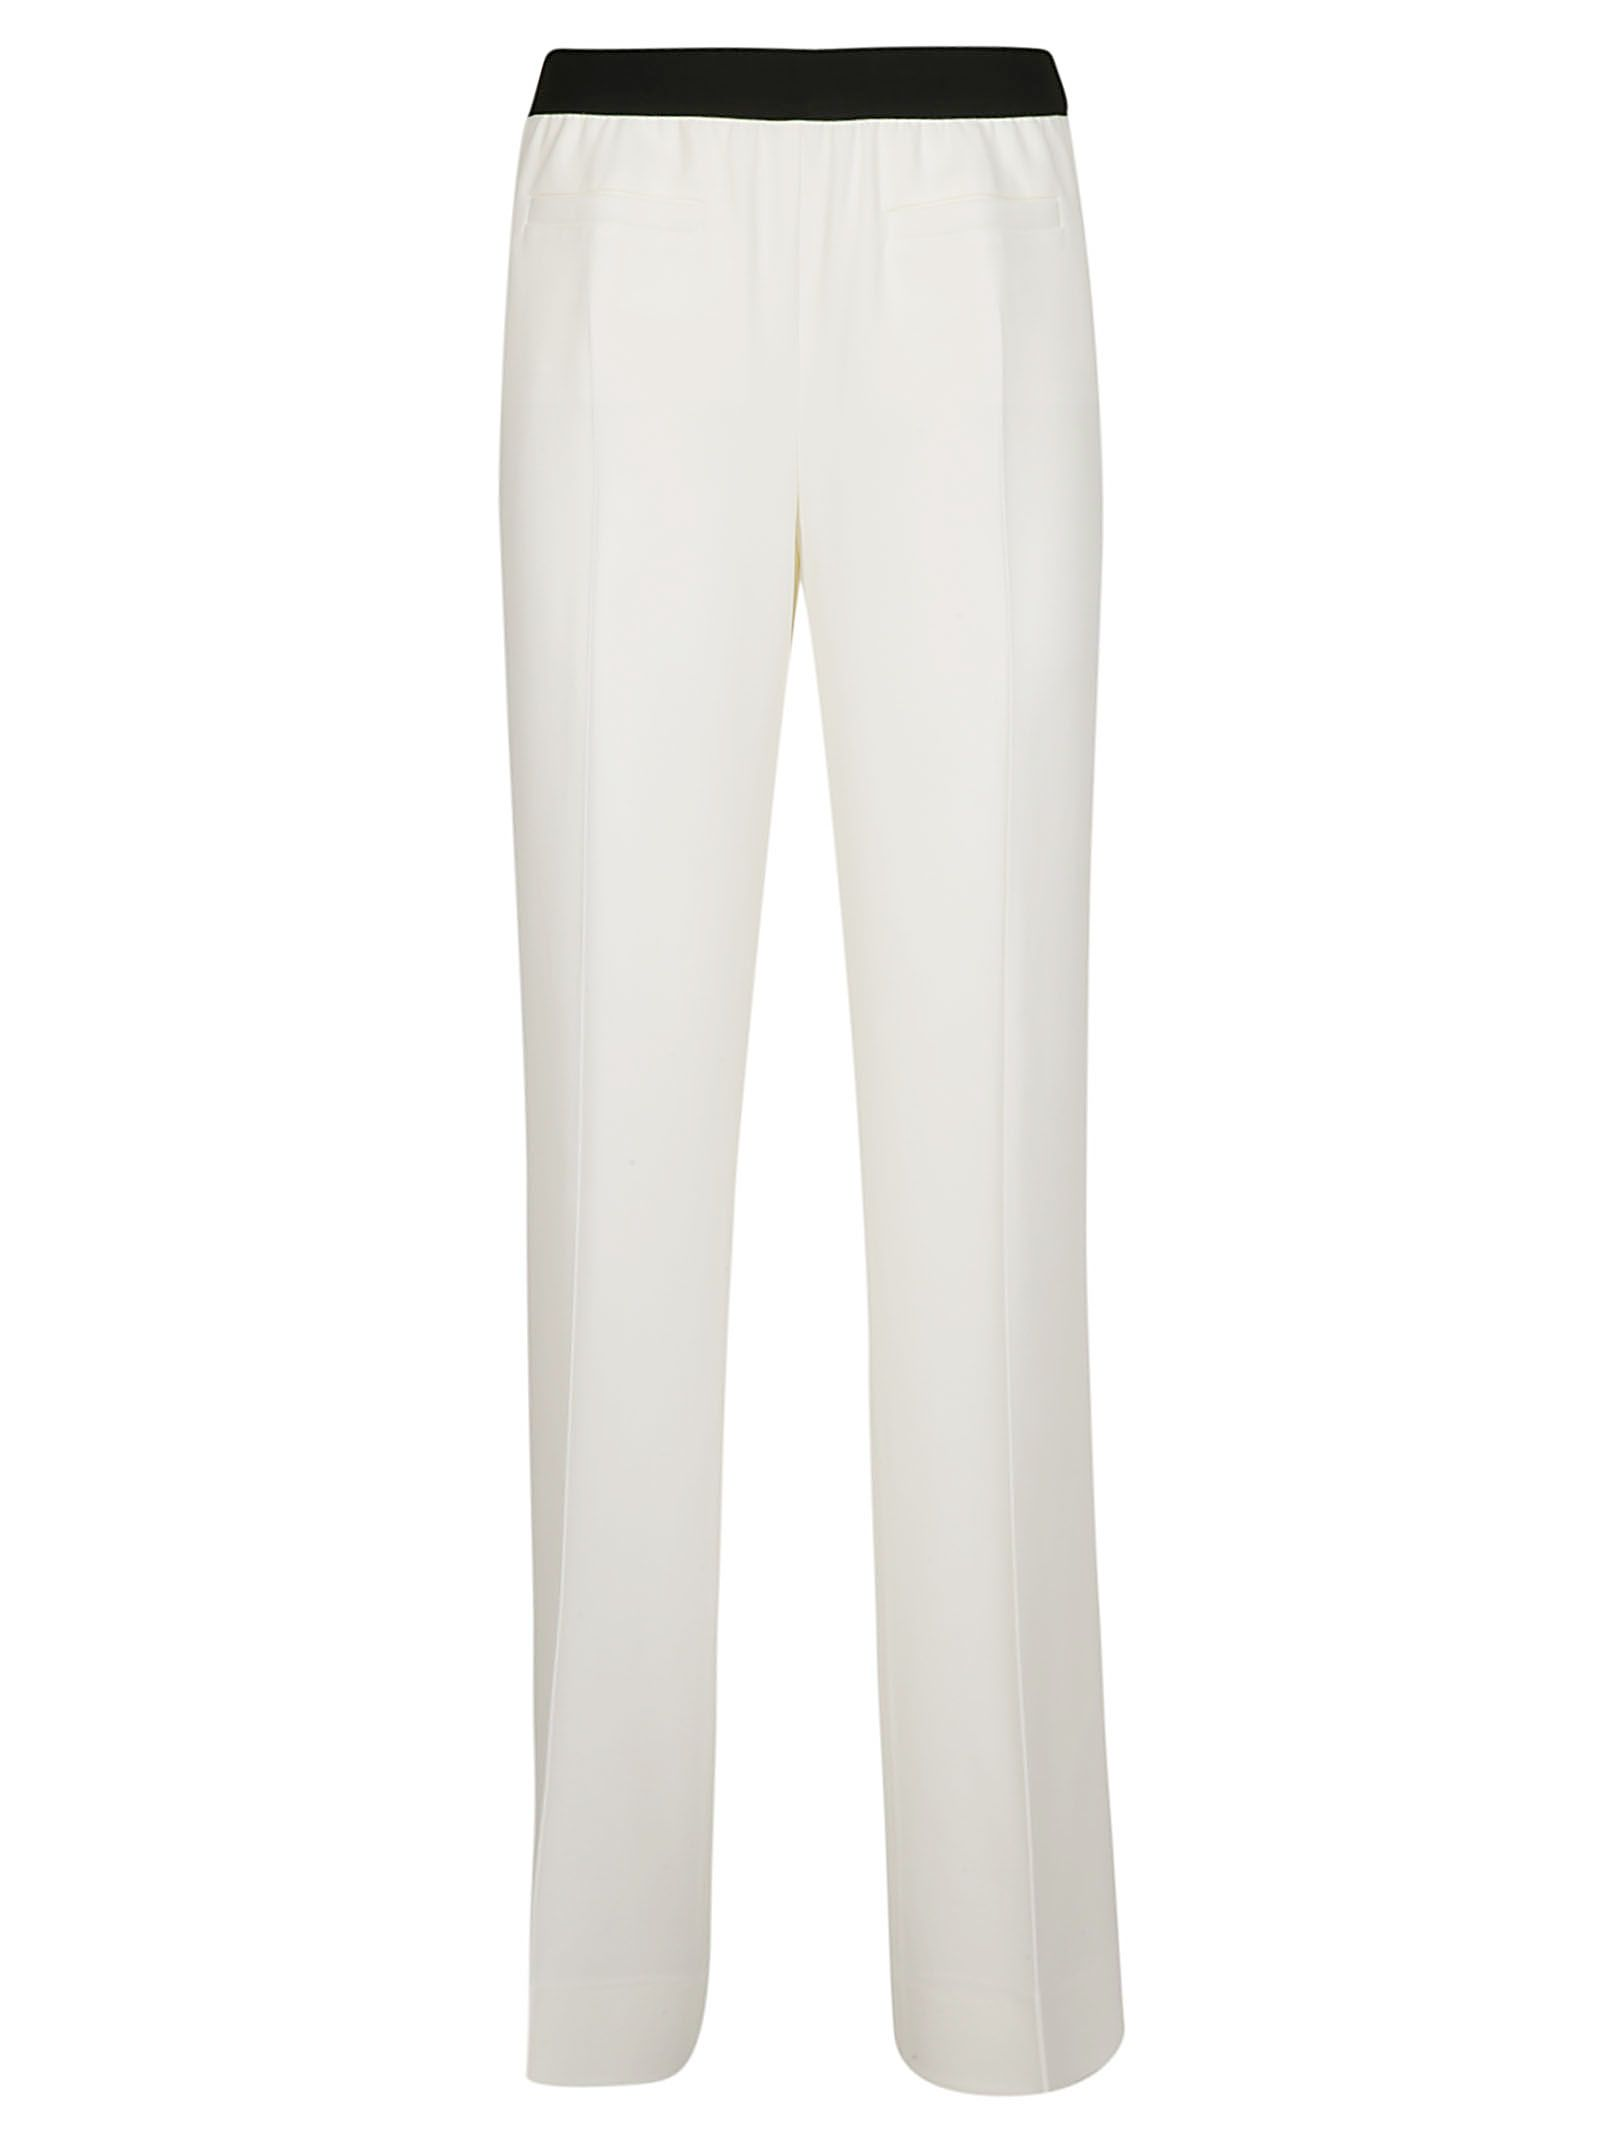 NEWYORKINDUSTRIE New York Industrie Classic Trousers in Panna